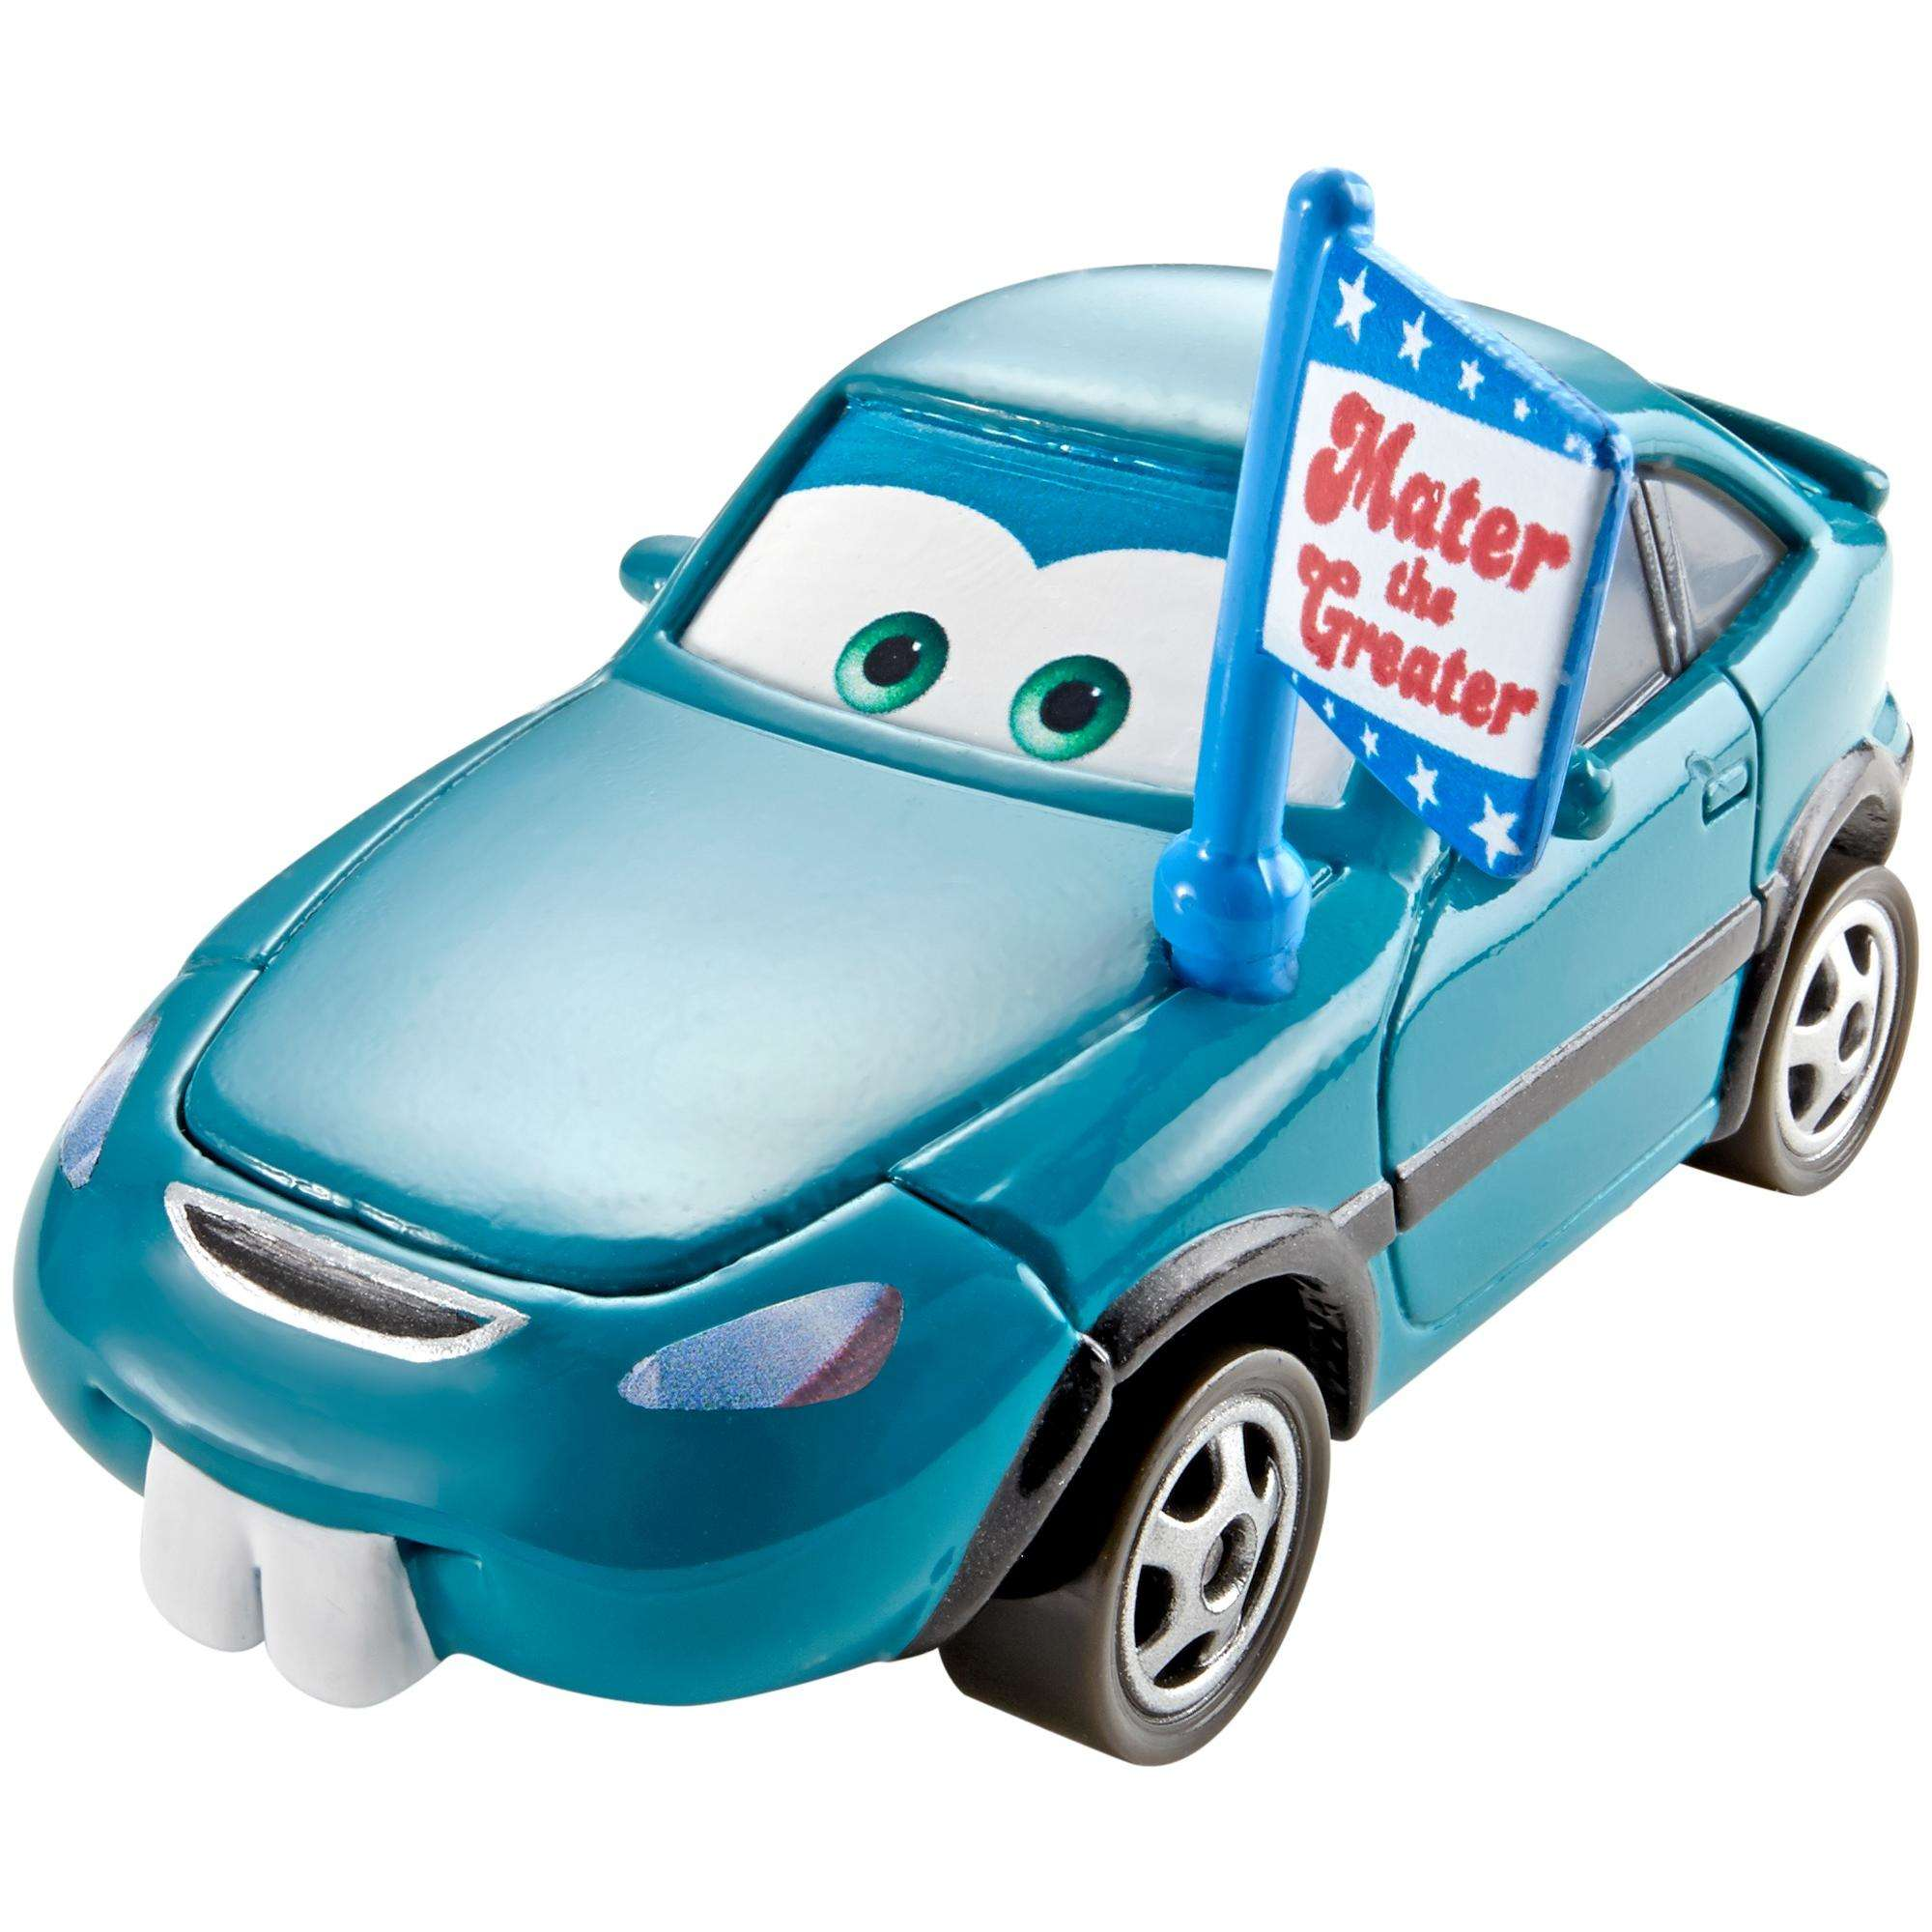 Disney Pixar Cars Mater The Greater Blue Fan In The Stands